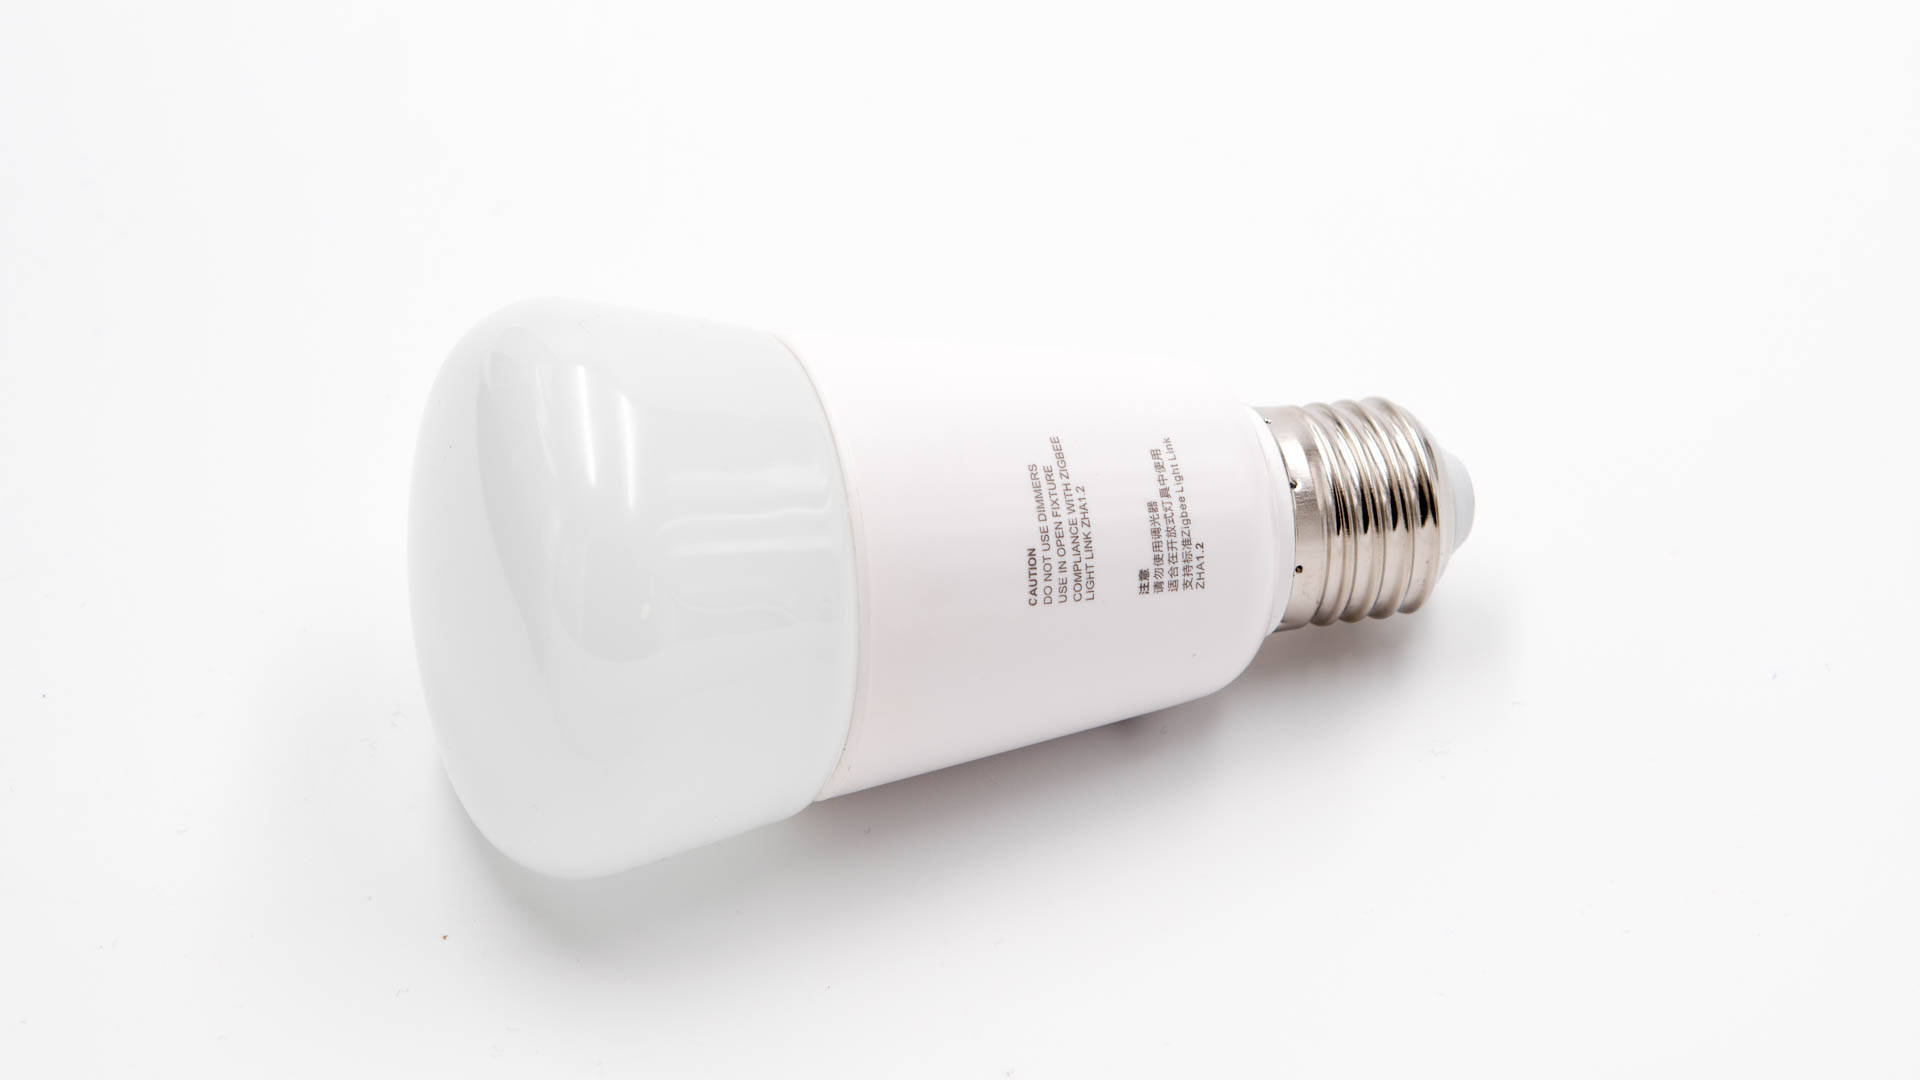 Die JIAWEN E27 9W Smart RGB Bulb im Test, Philips Hue kompatible RGB ...